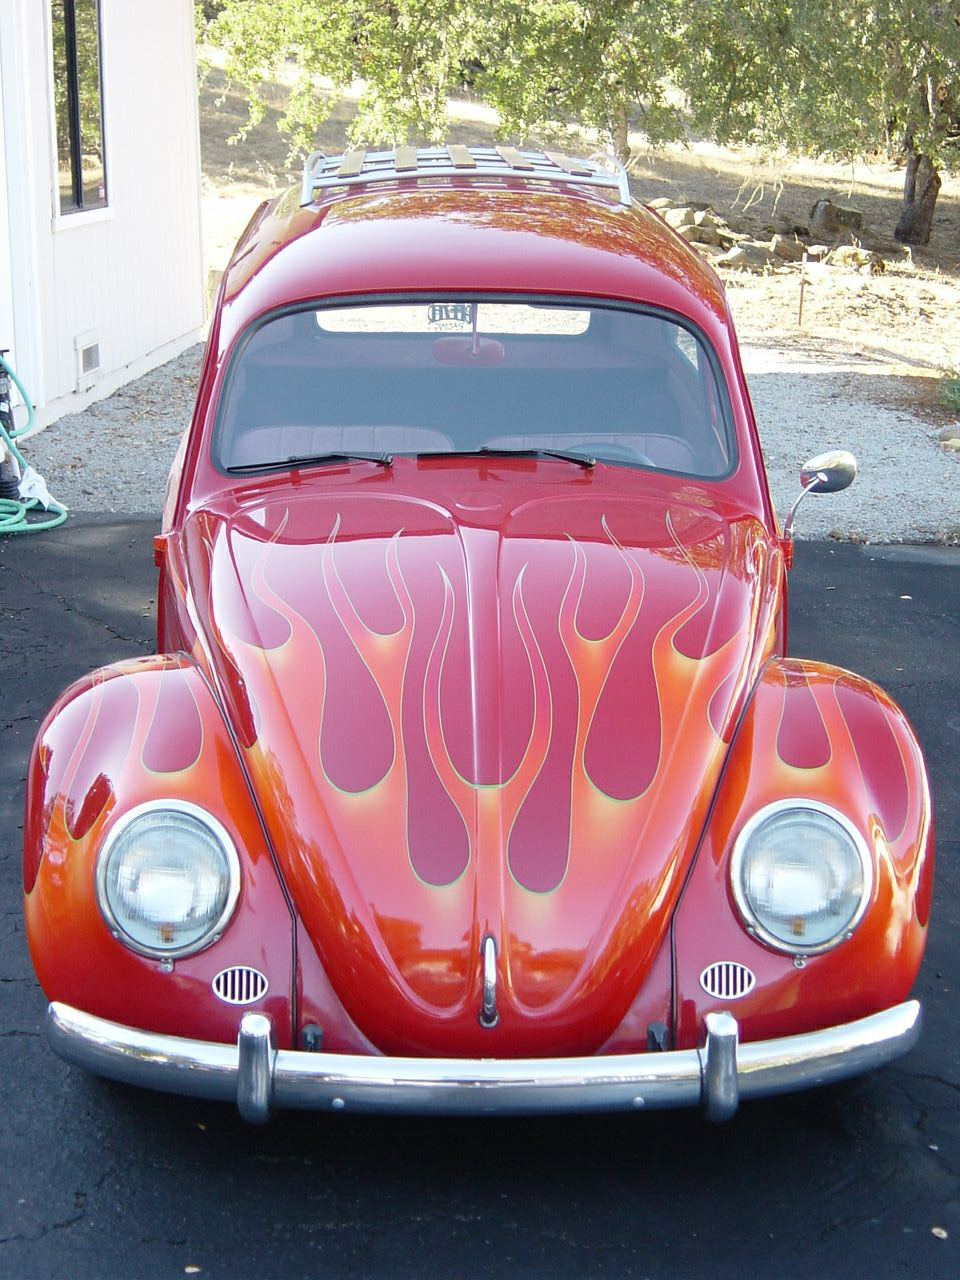 1959 VOLKSWAGEN CUSTOM BUG BUS - 22192